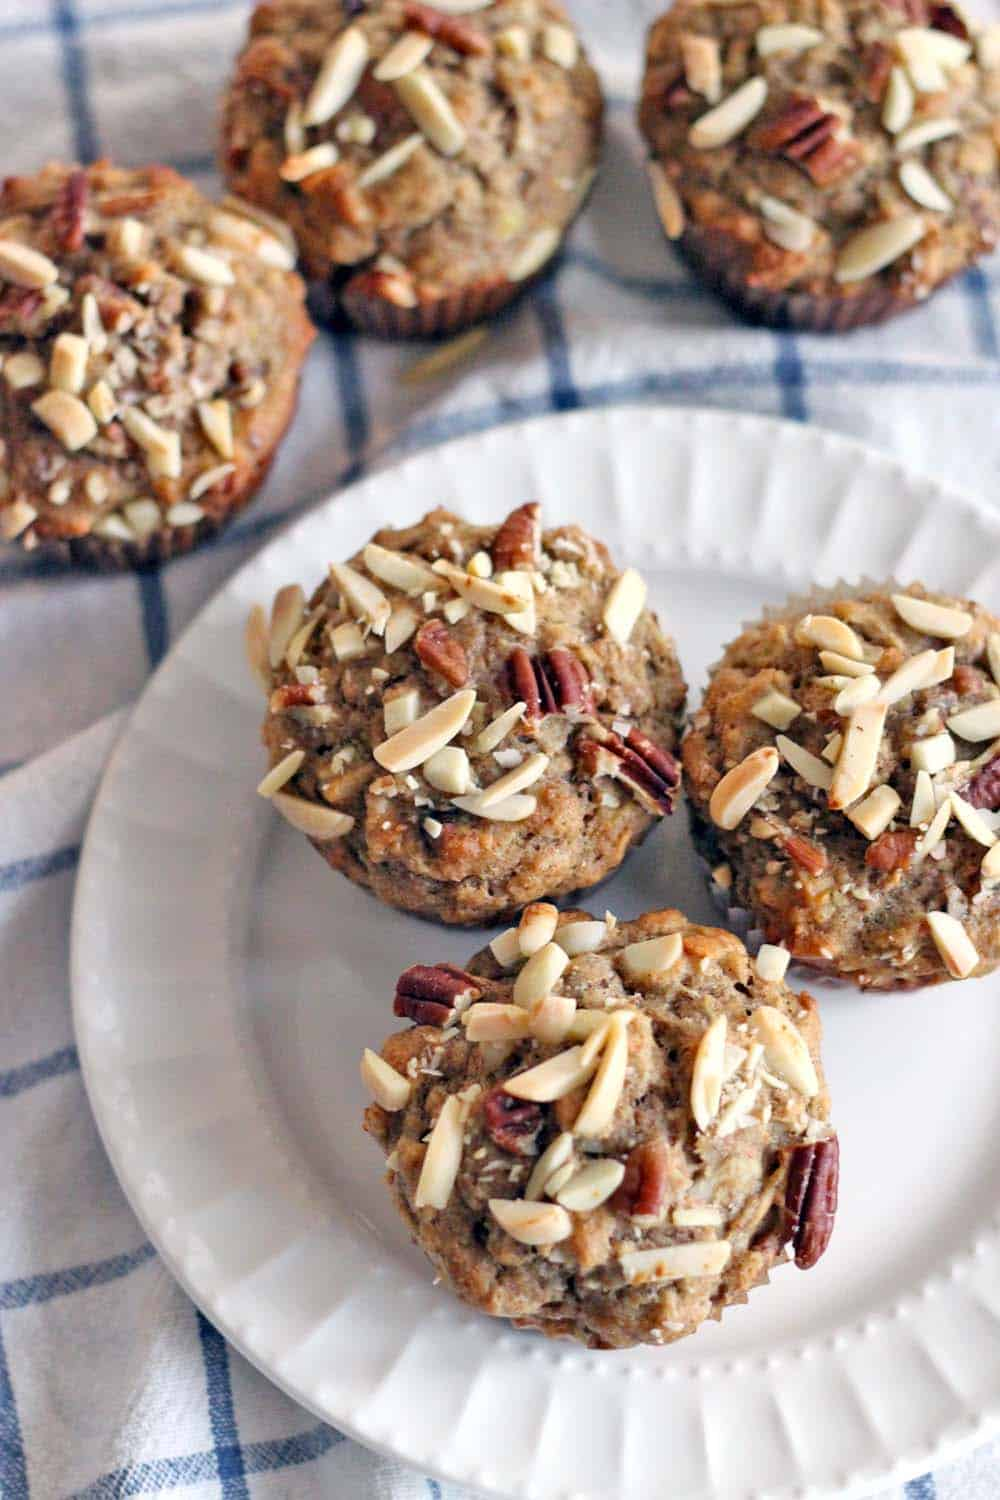 Whole Wheat Banana Oat and Toasted Nut Muffins | These muffins are 100% whole grain and guilt-free, packed full of nuts for protein and banana for natural sweetness. They are moist, delicious, and can be made in bulk and frozen for easy busy morning breakfasts!